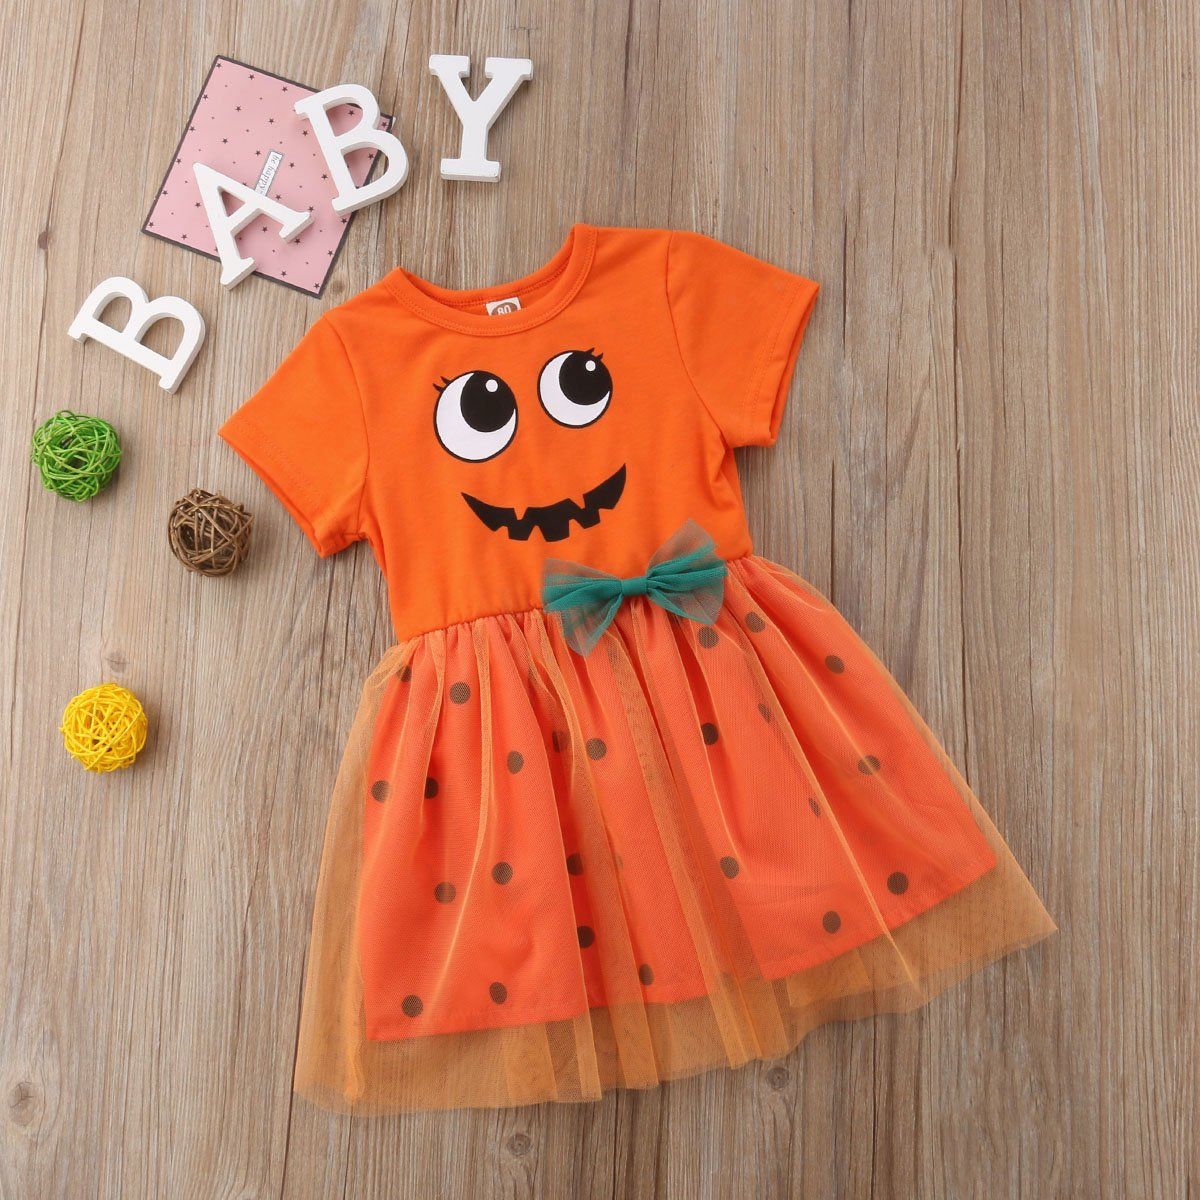 ITFABS Baby Girl Clothes Hallows Shirt Dress Lace Skirt Casual Dress